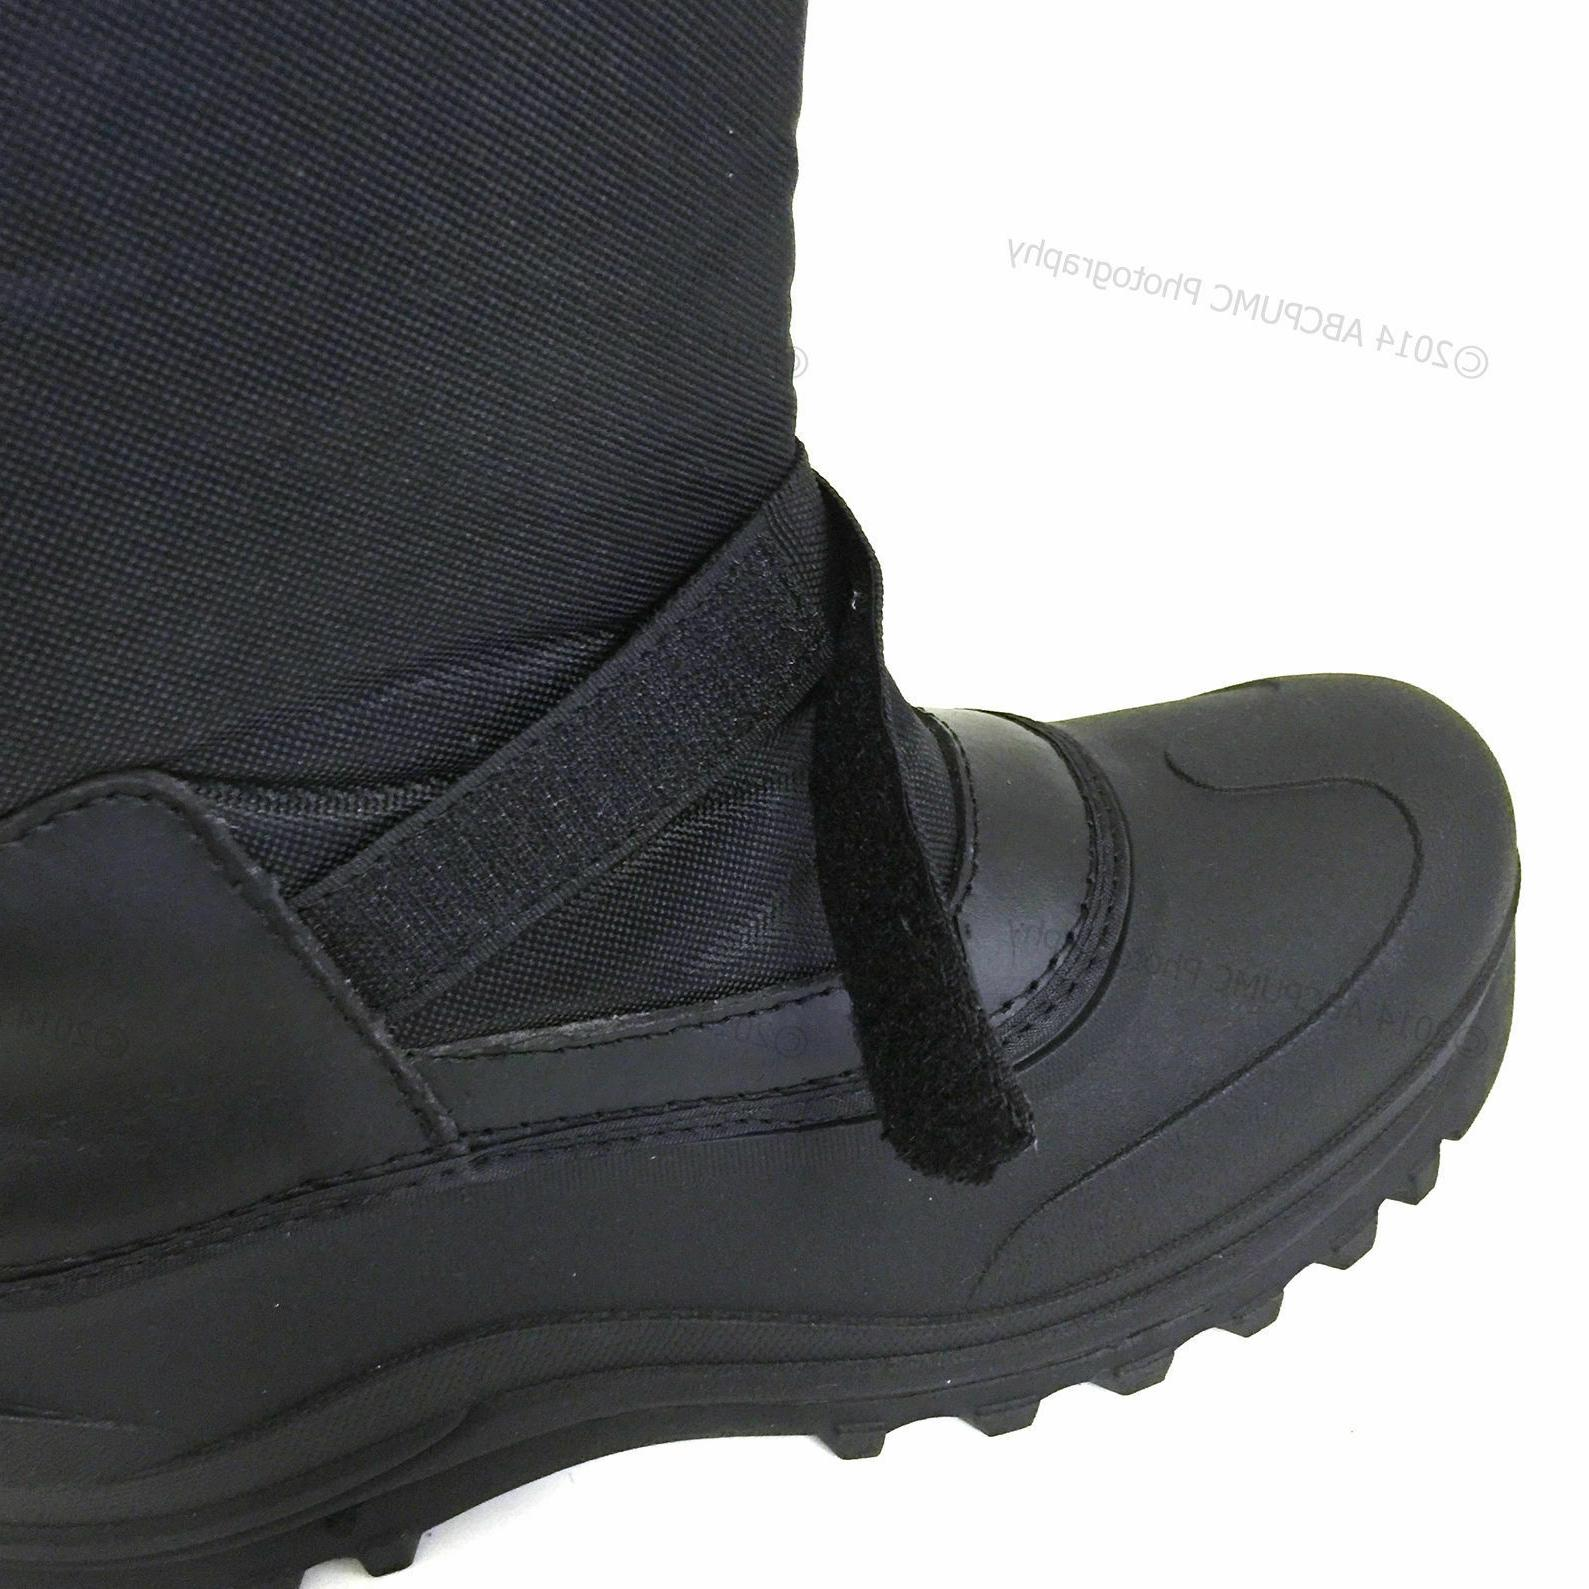 L&M Black Snow Boots Shoes Warm Thermolite Waterproof